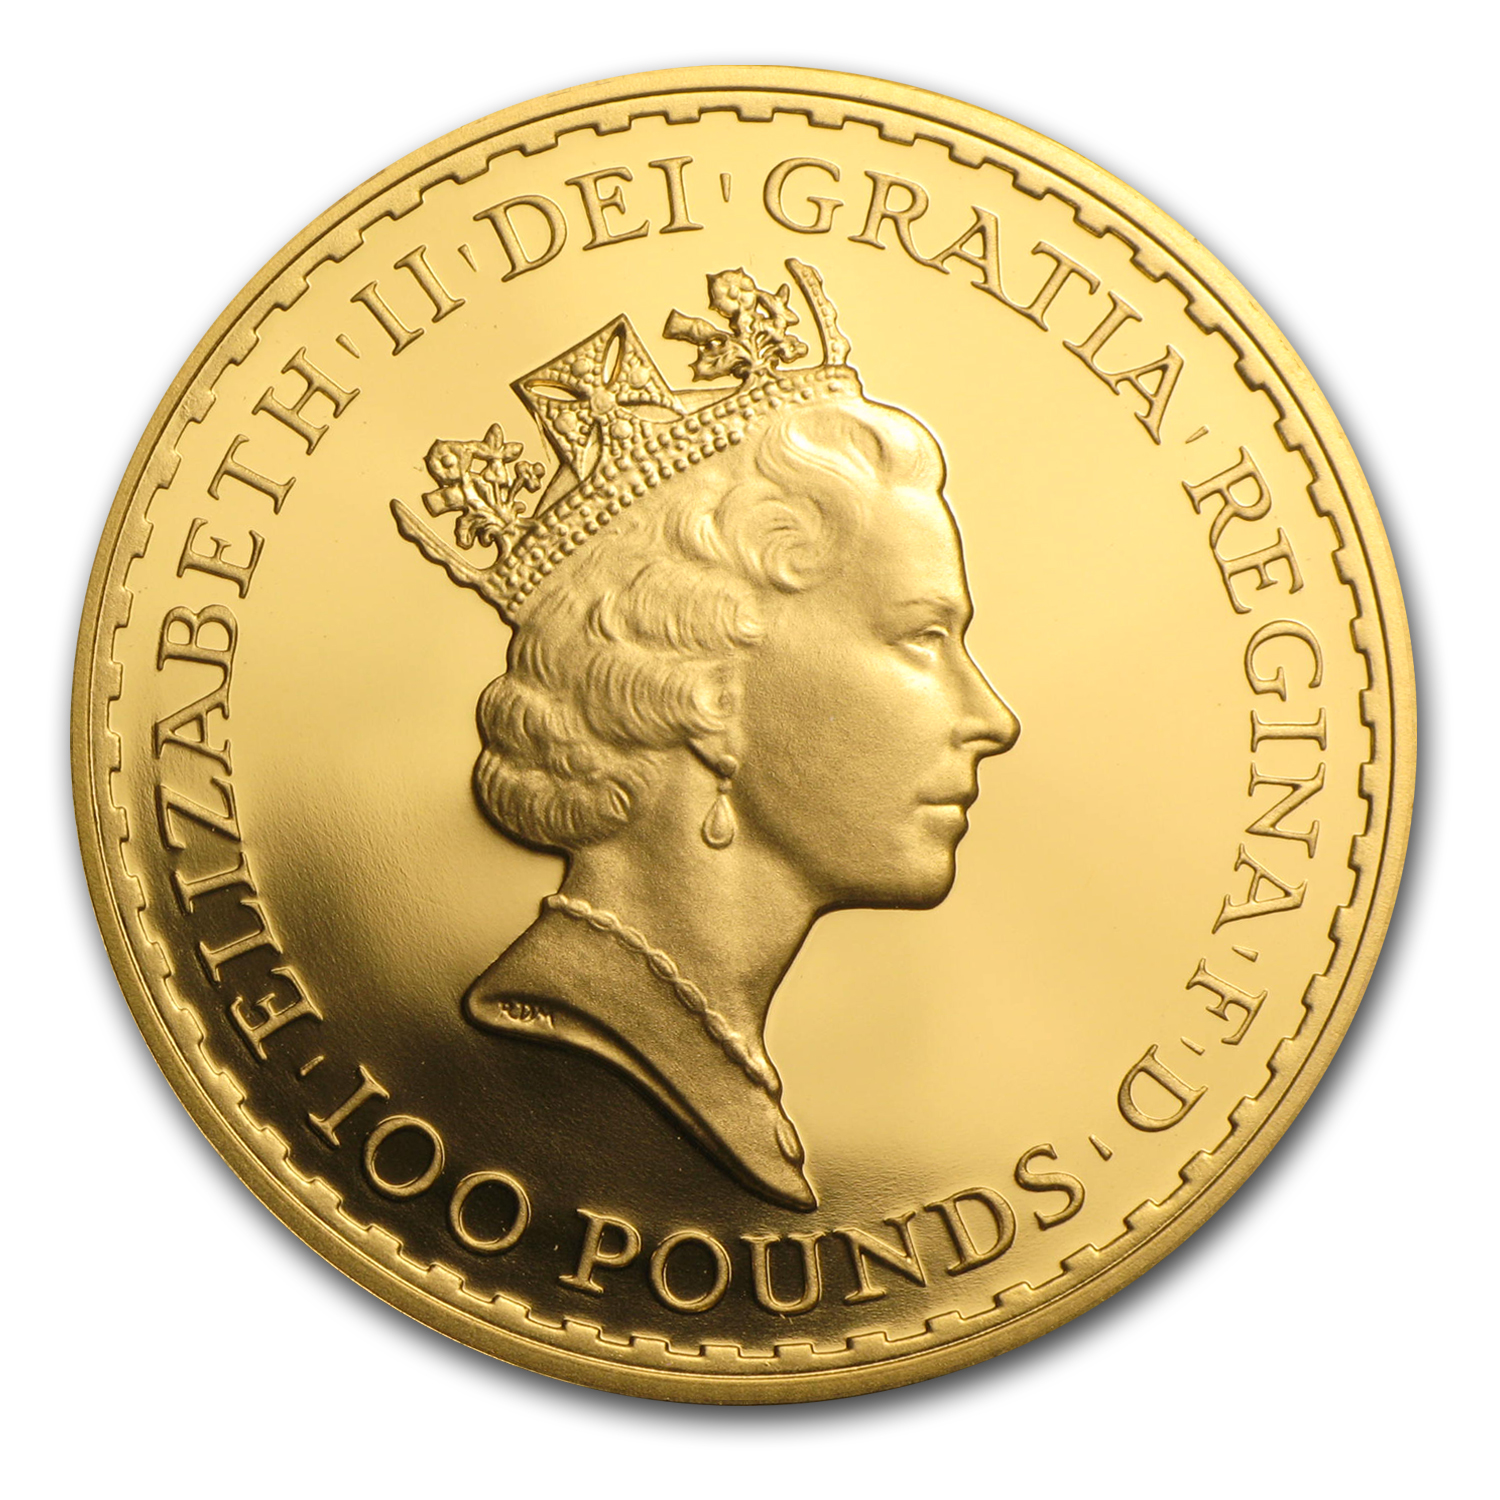 1993 1 oz Proof Gold Britannia